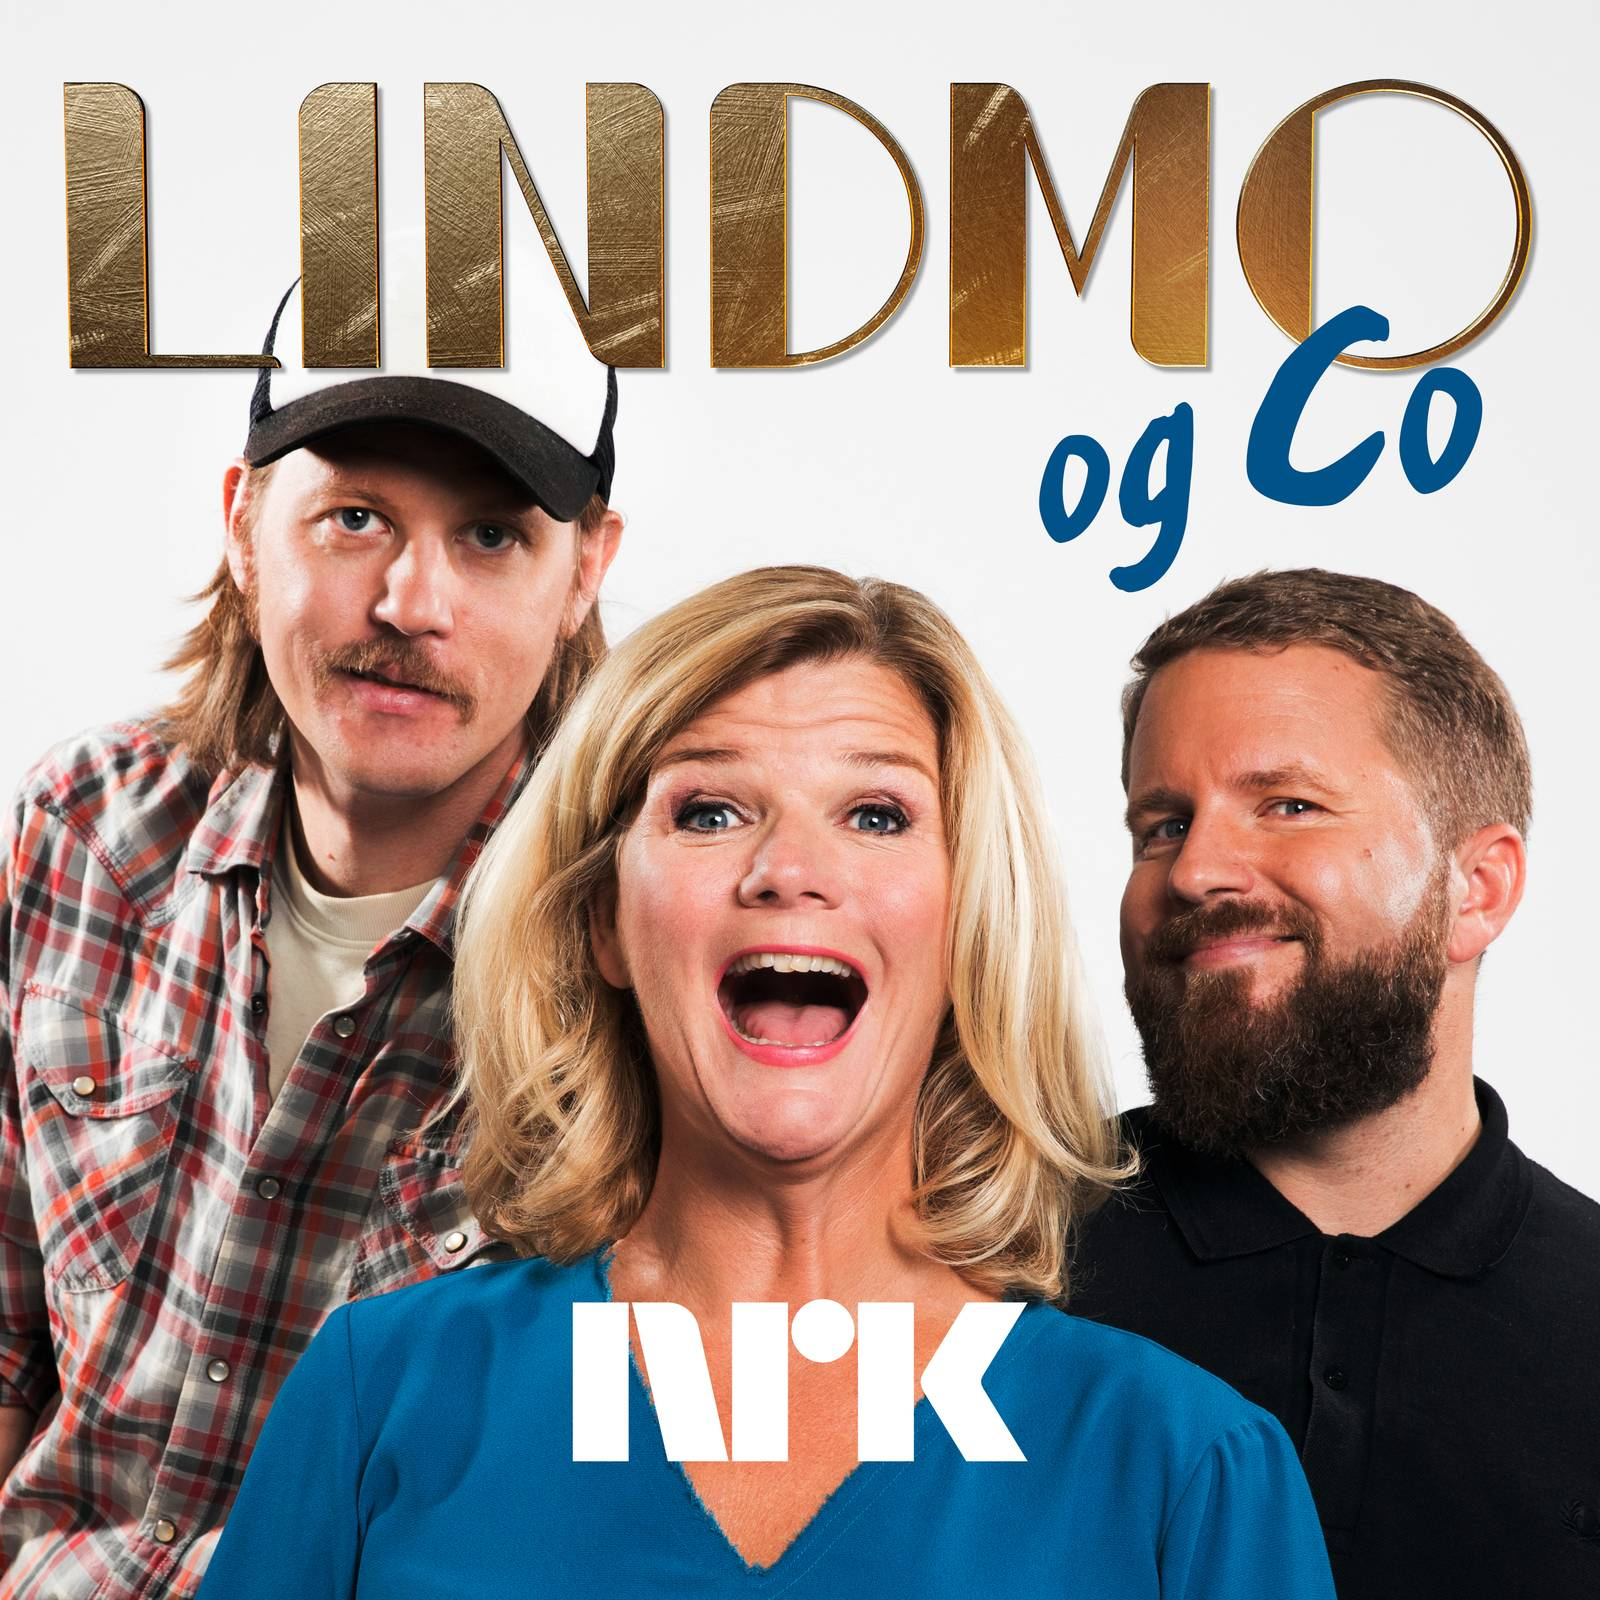 Lindmo og Co